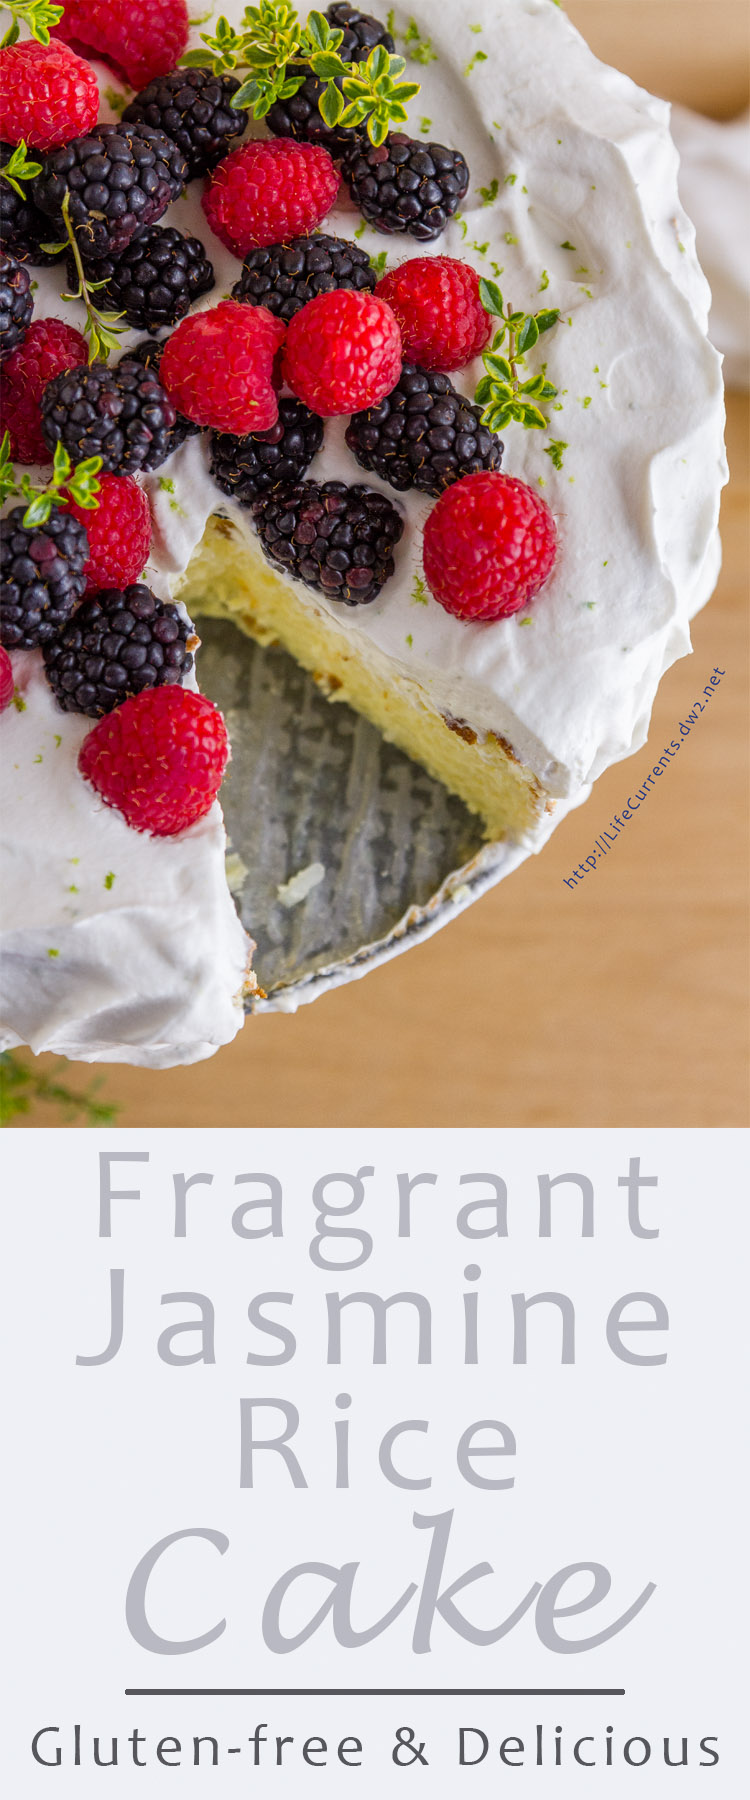 Fragrant Jasmine Rice Cake - pretty gluten-free cake with fragrant cardamom & lime scented rice pudding insides all crowned with lime whipped cream & berries